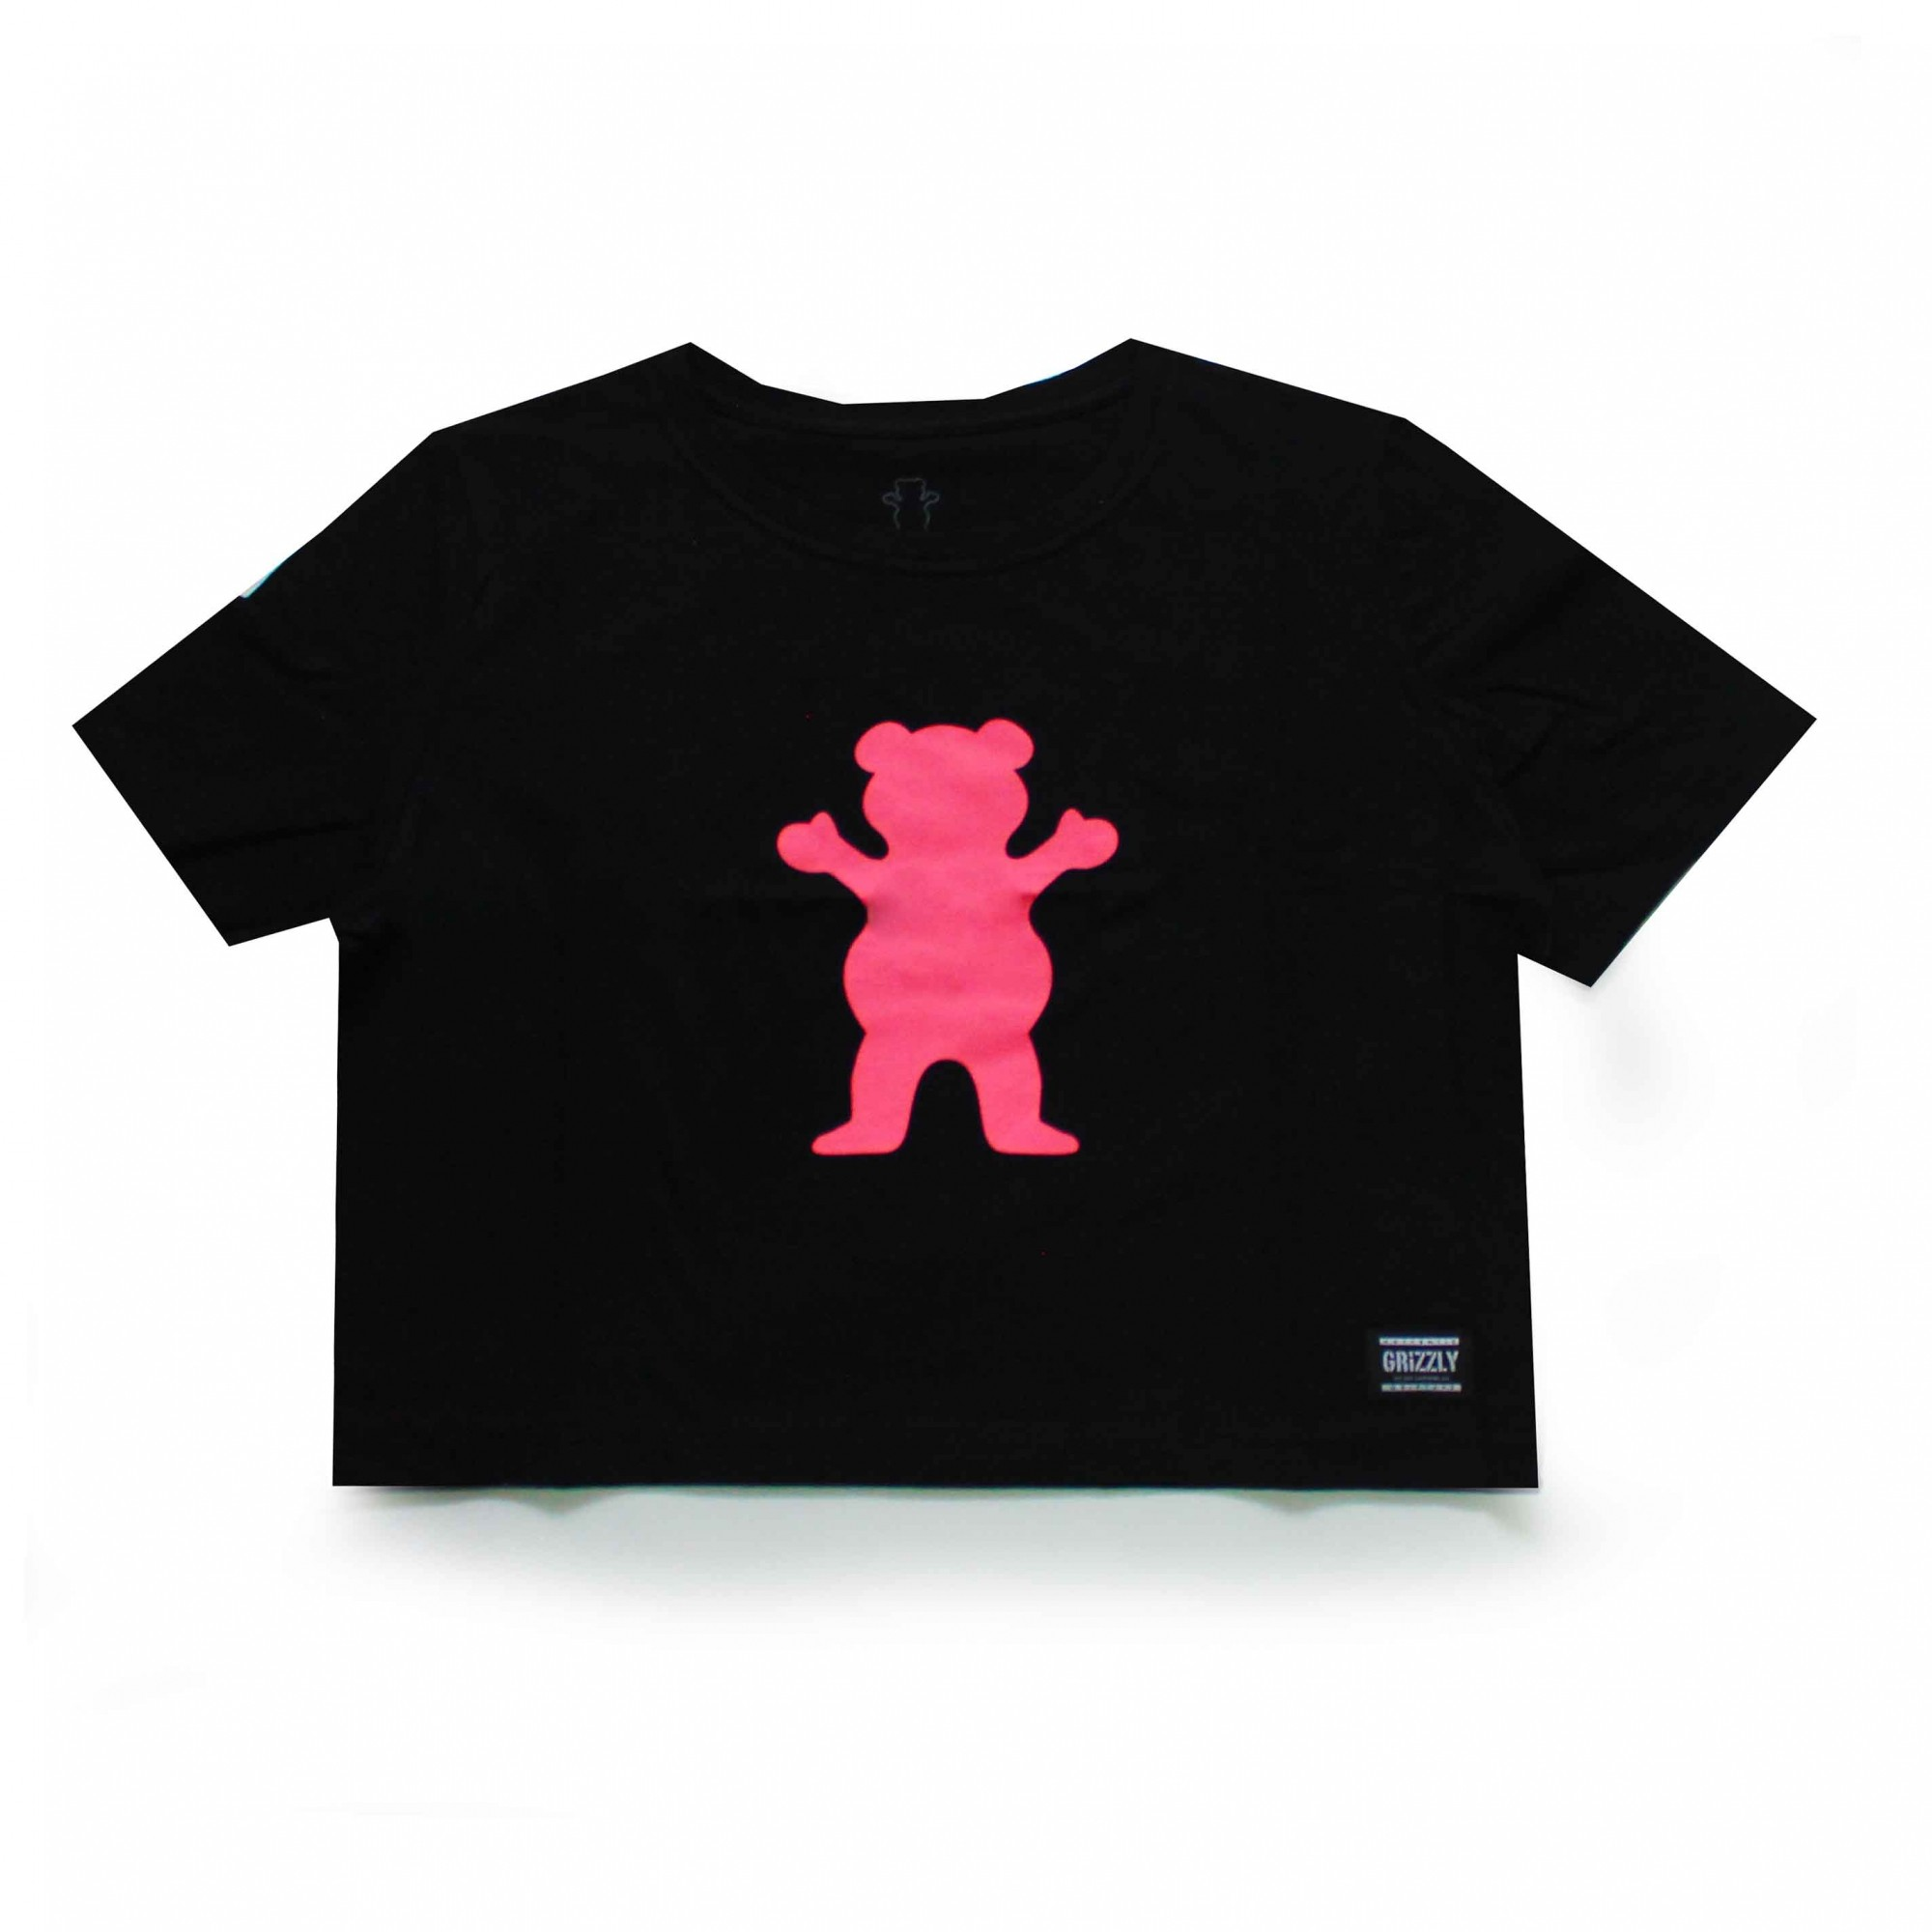 Cropped Grizzly Og Bear - Preto/Rosa